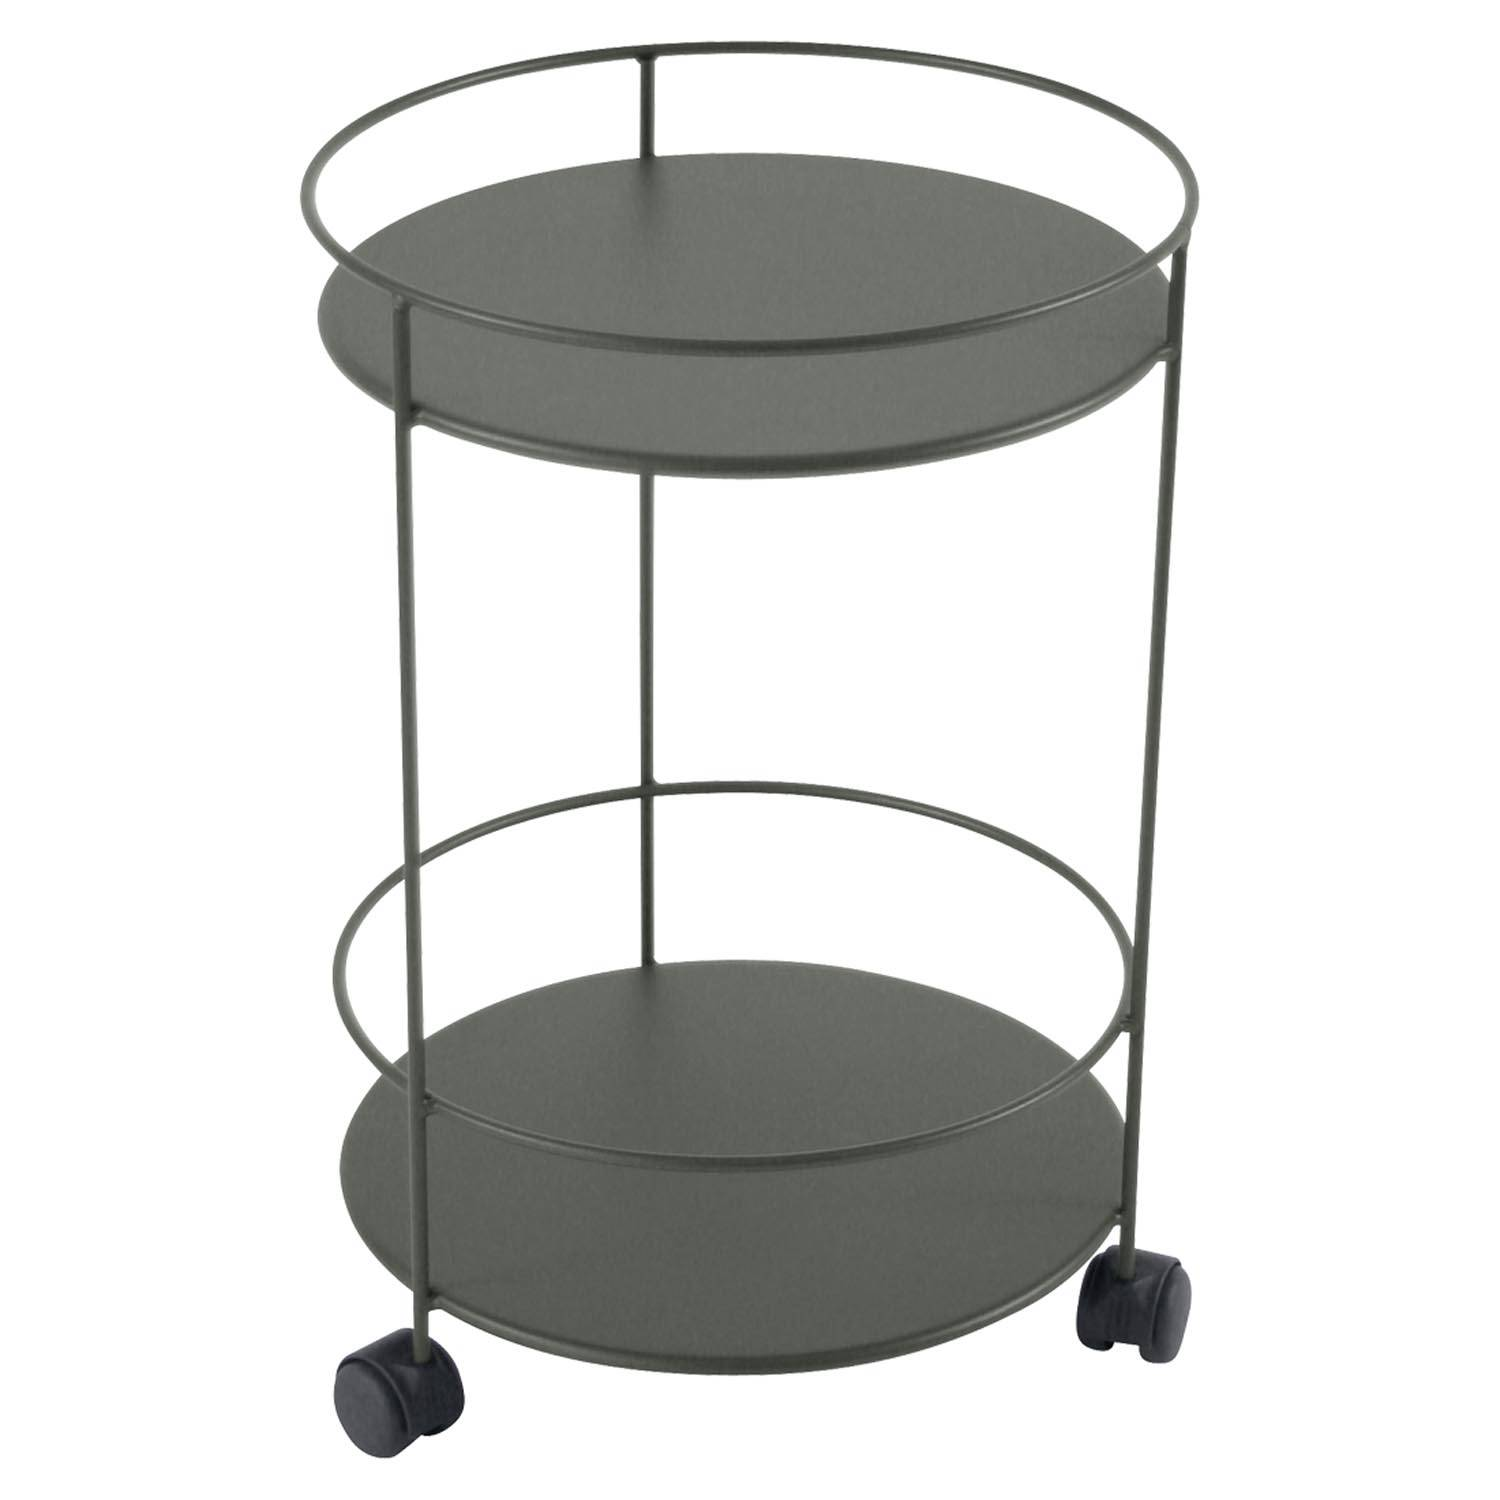 Fermob Small Table Perforated Ø40, Rosemary